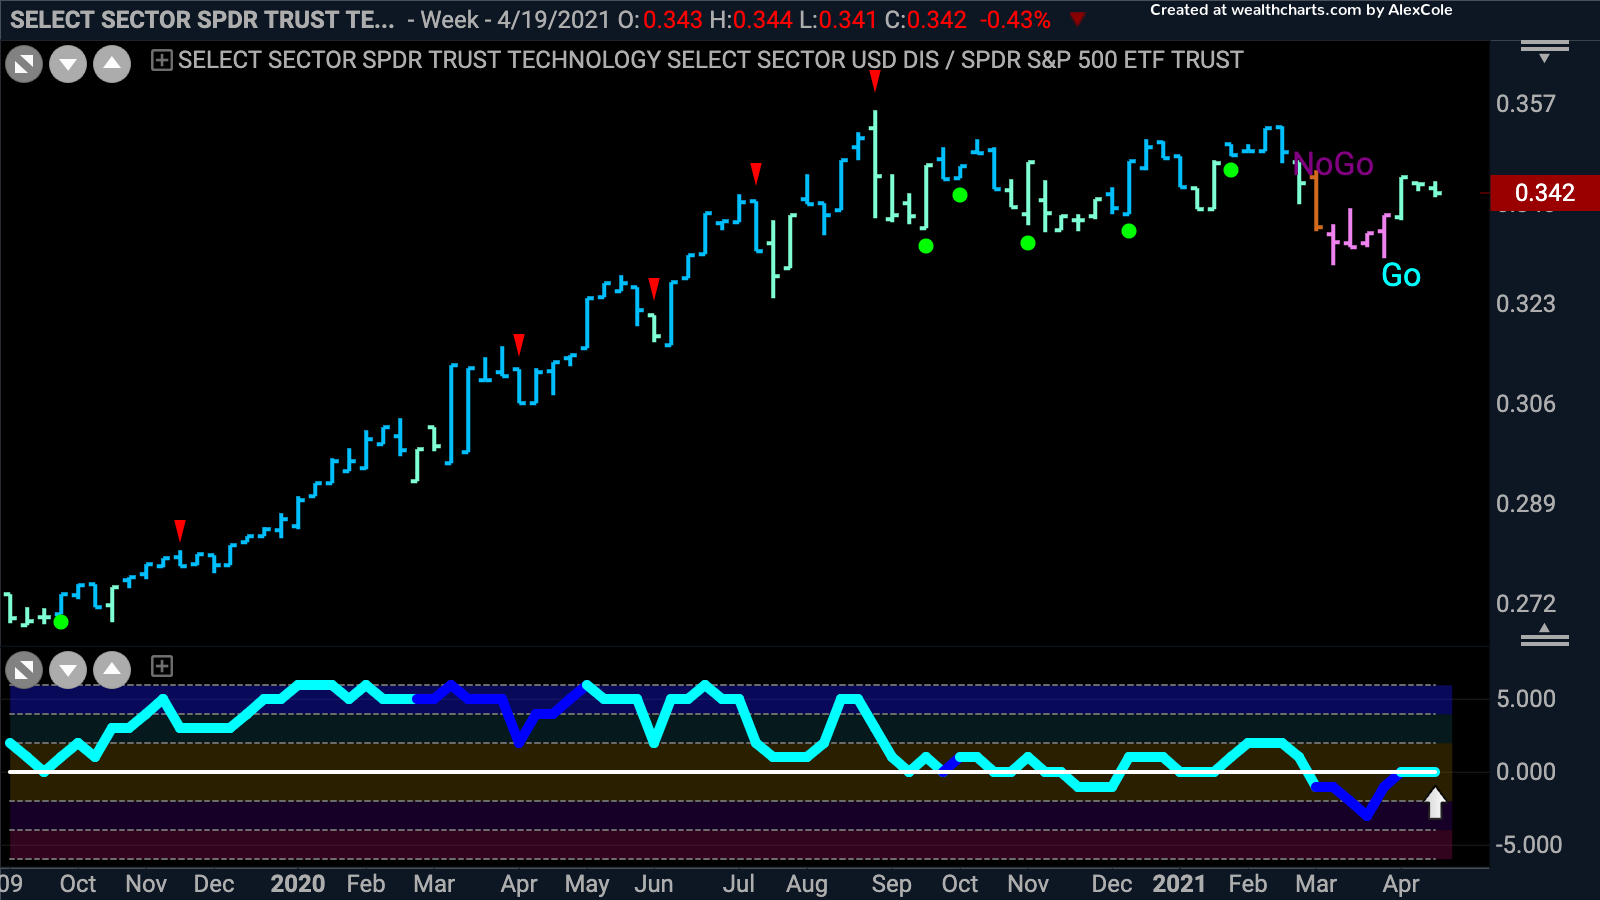 Mega Cap Technology outperforming once again